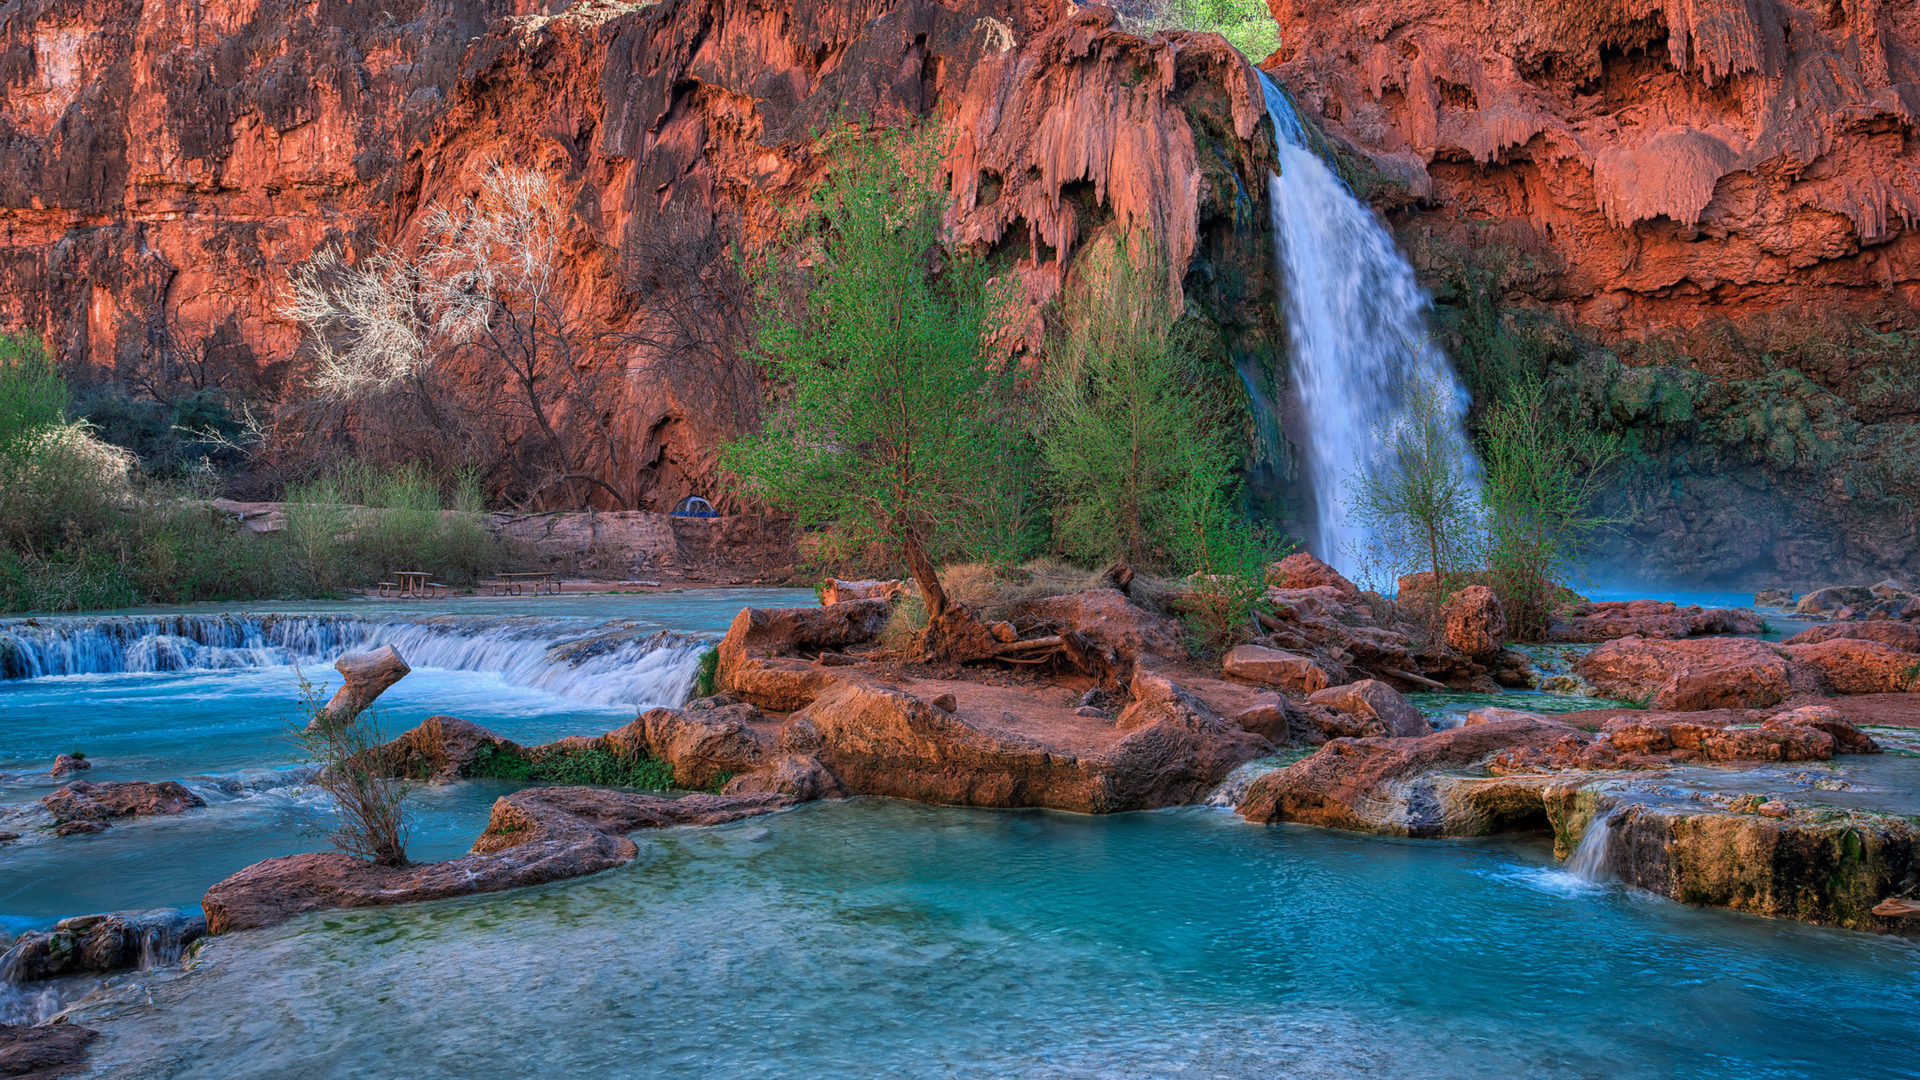 Havasu Falls Wallpaper Havasu Falls Arizona Usa Desktop Wallpaper Backgrounds